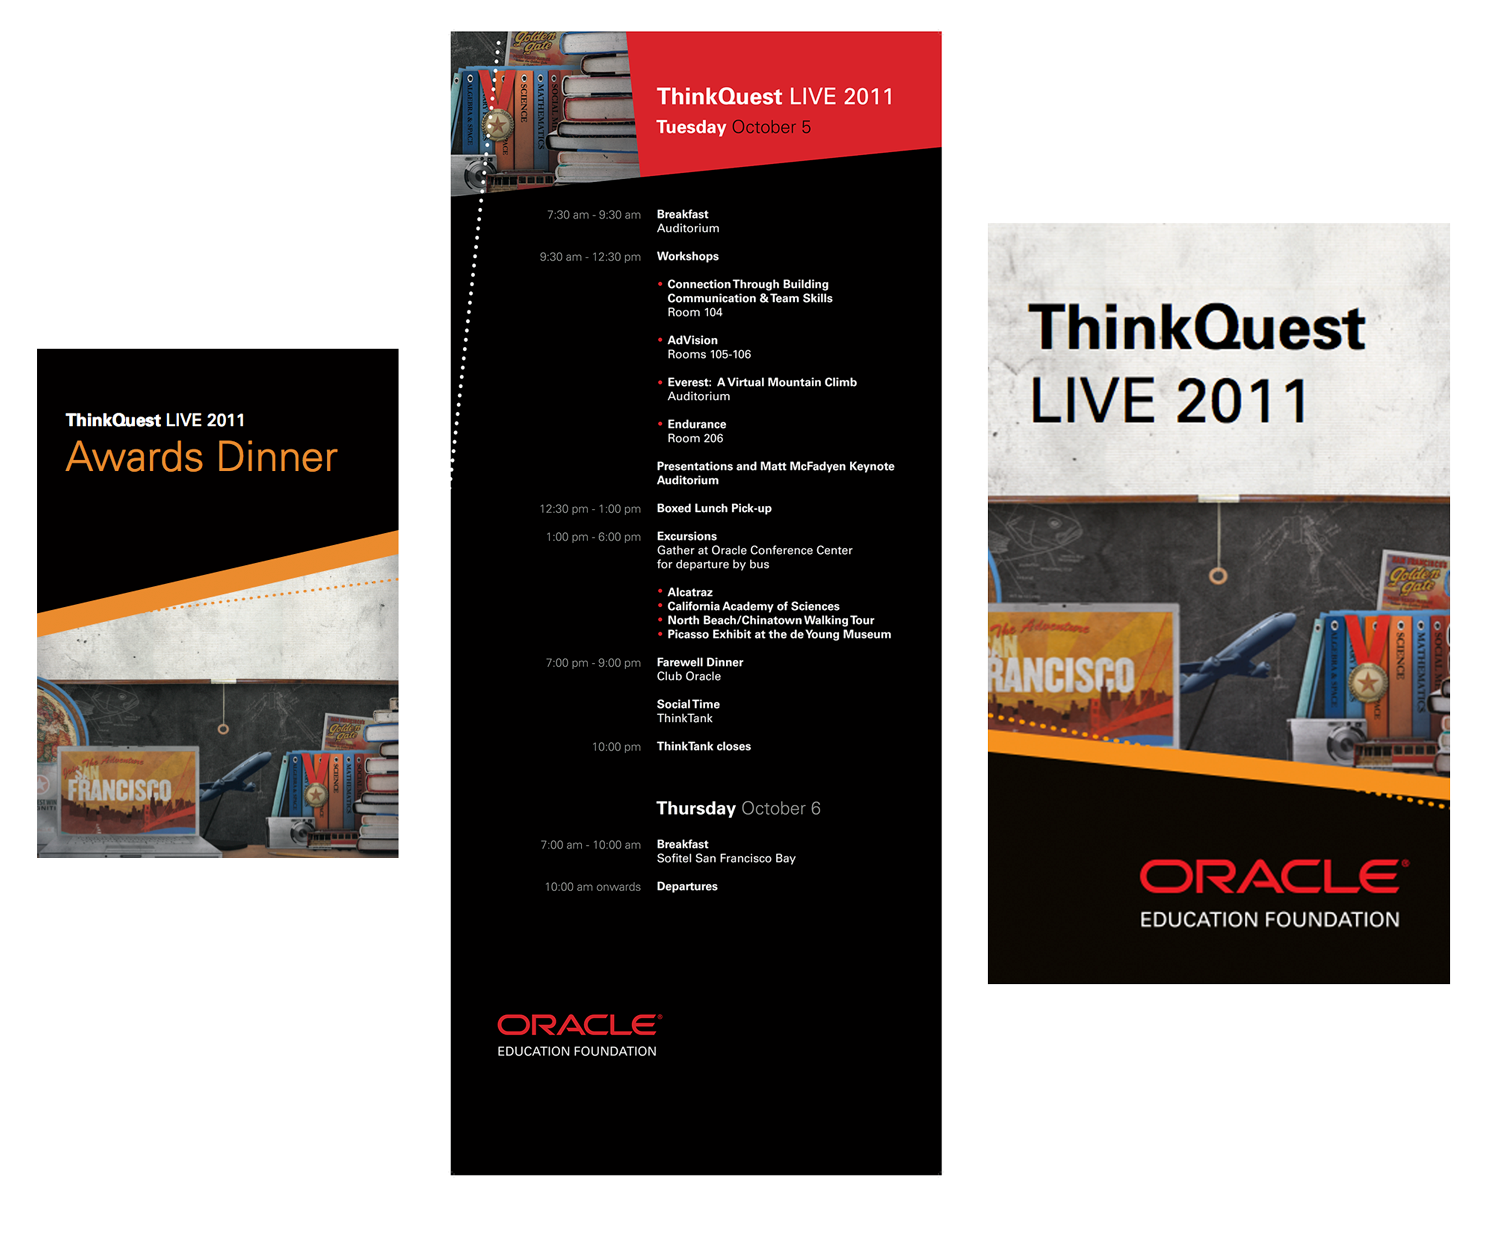 ThinkQuest Live 2011 promotional materials